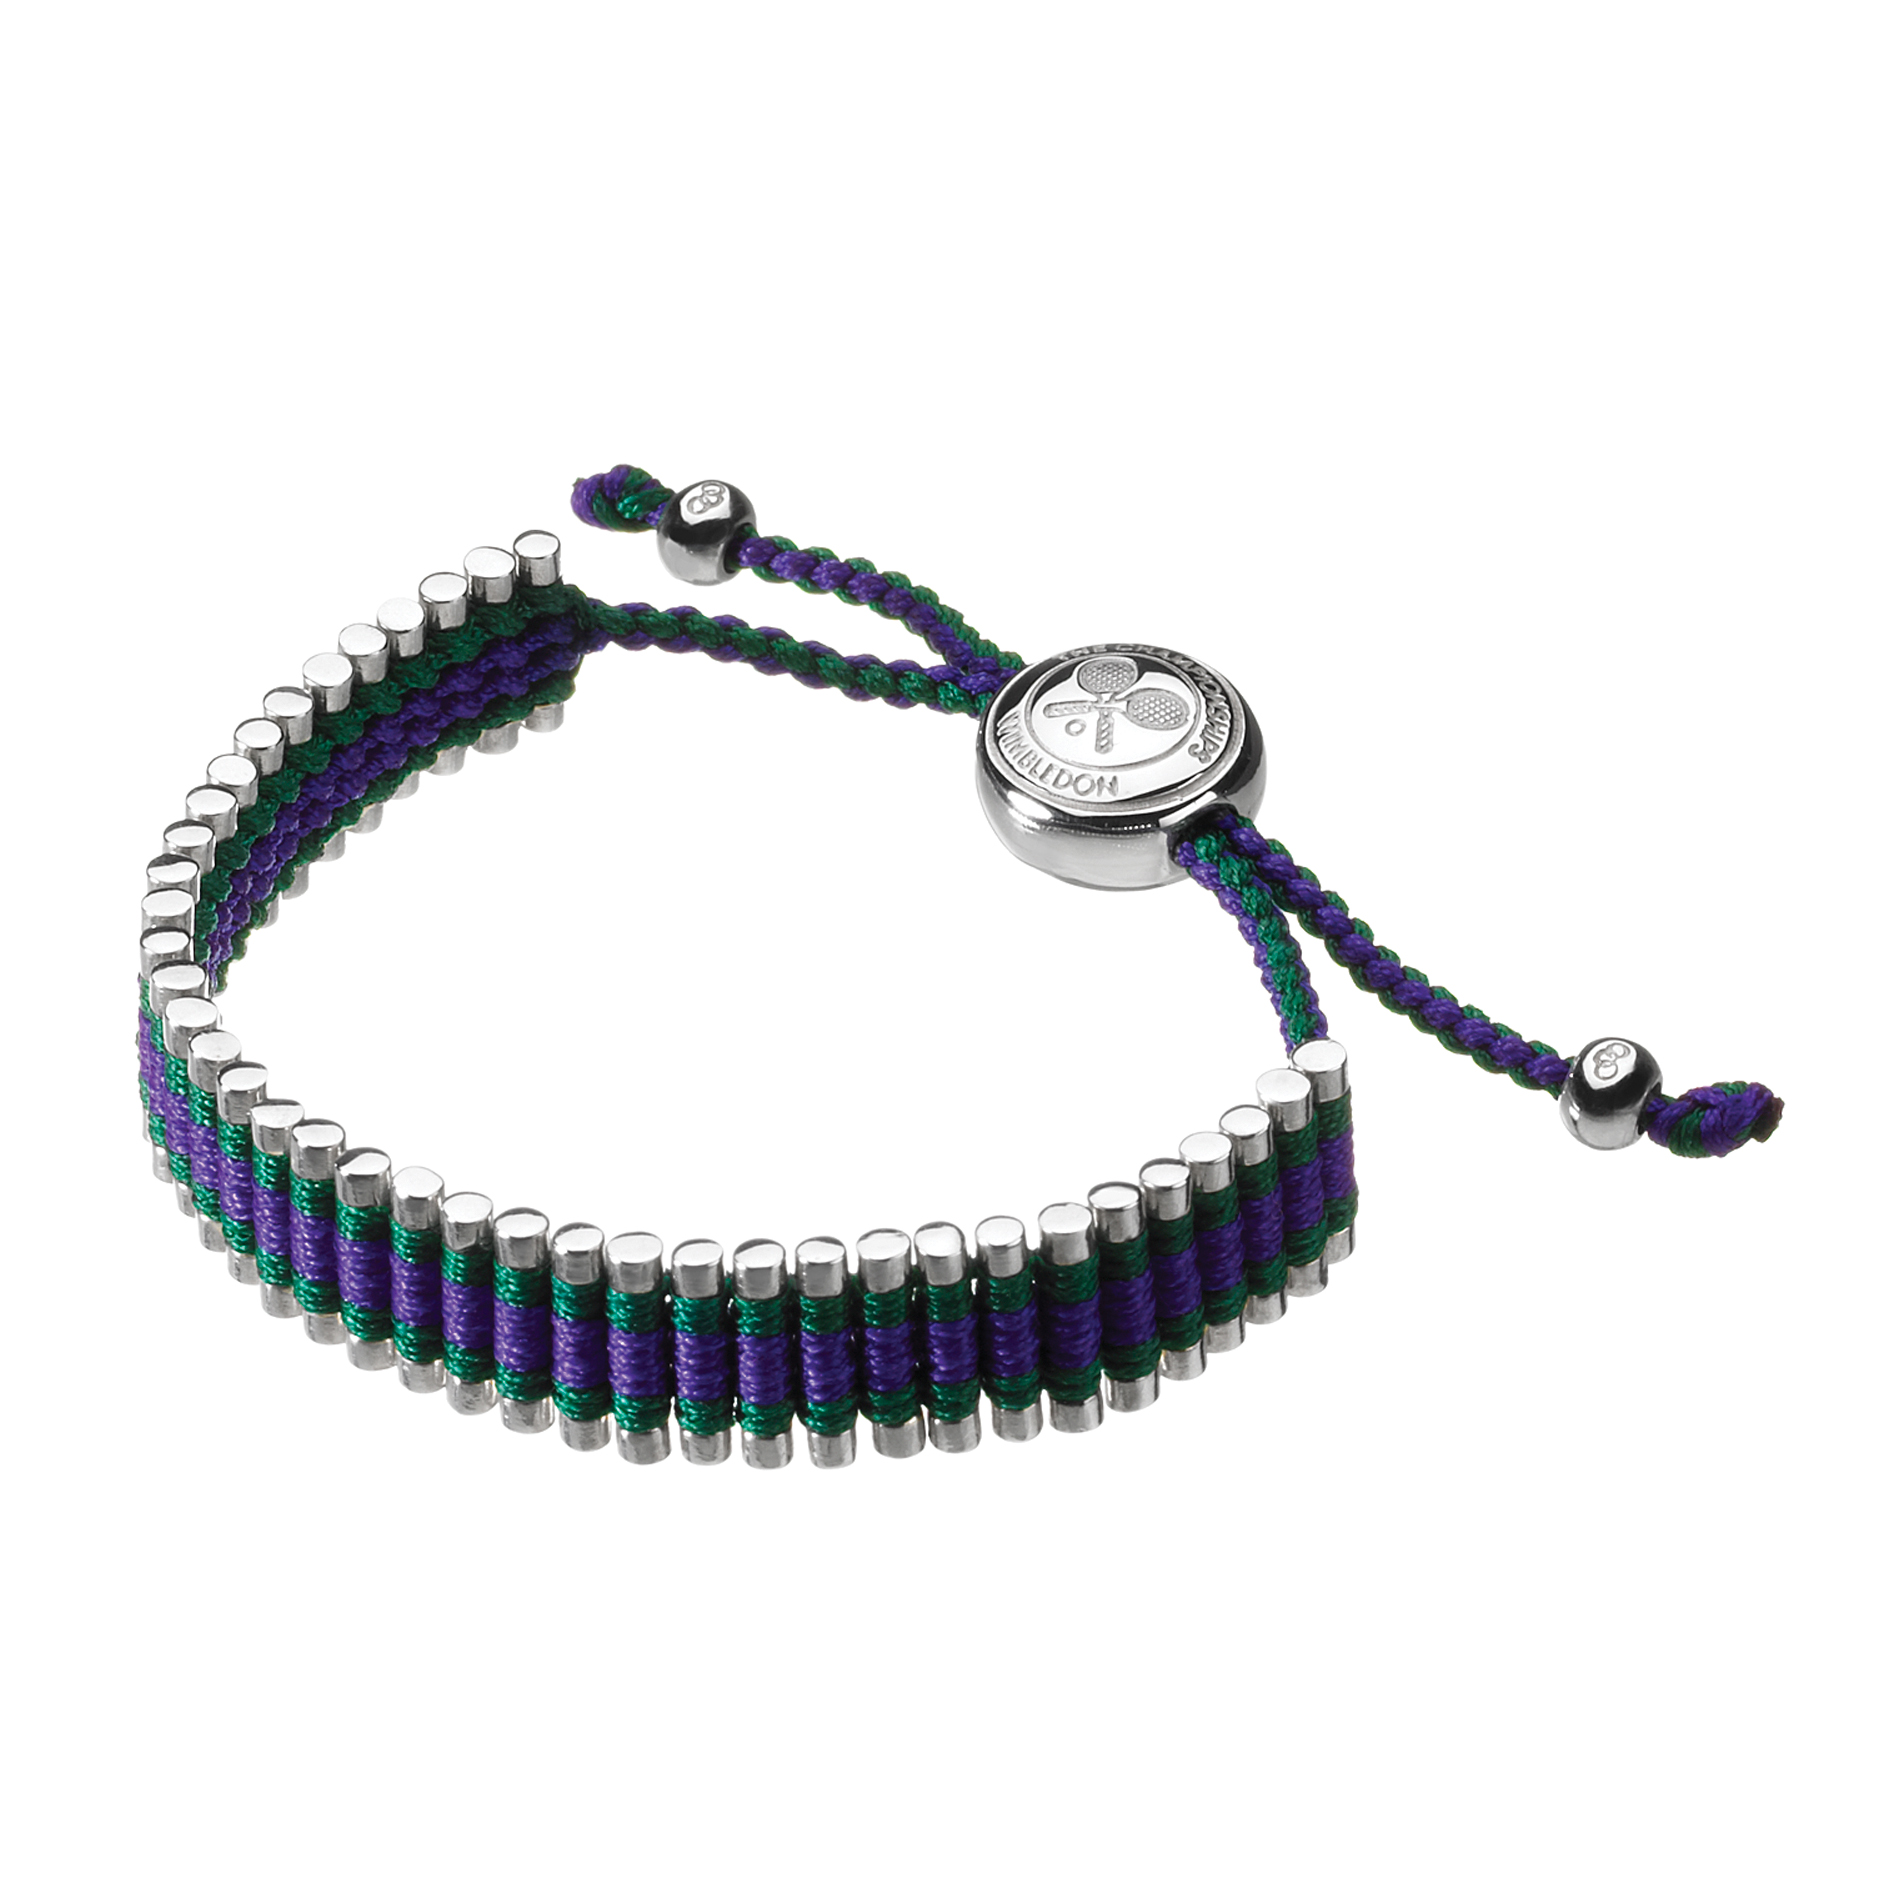 Wimbledon Green/Purple Friendship Bracelet